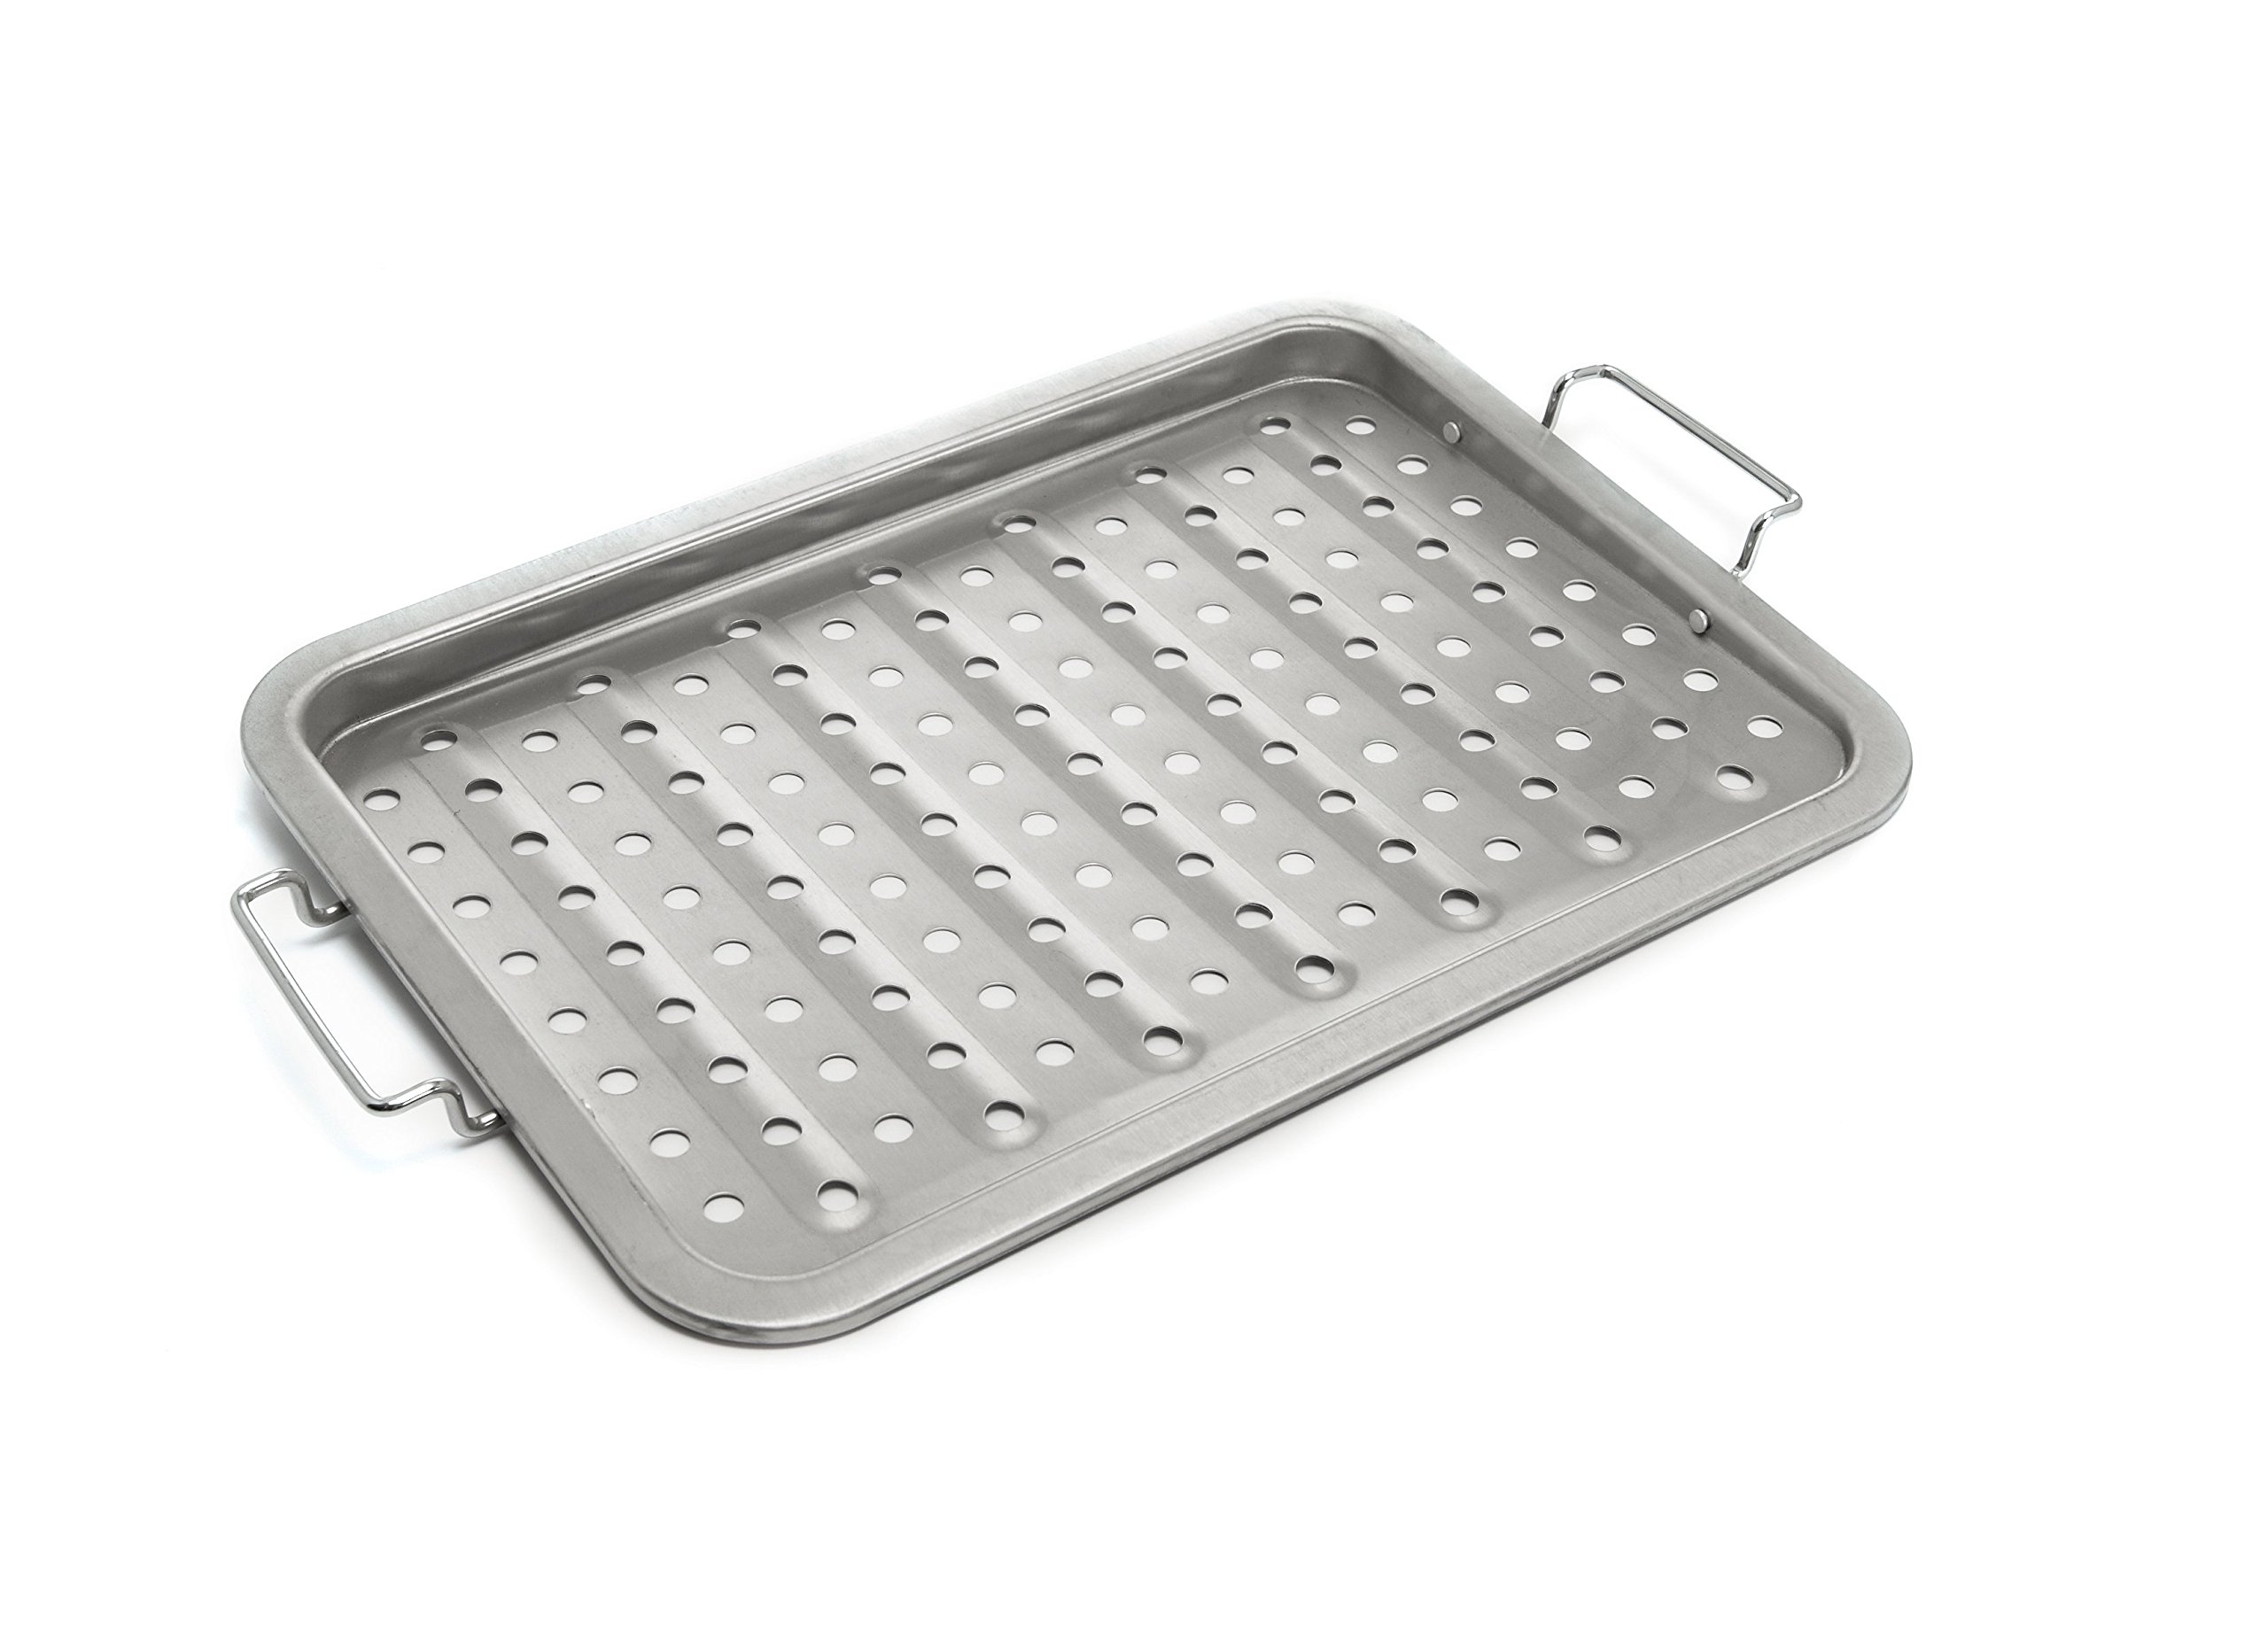 GrillPro 97125 Stainless Steel Grill Topper by GrillPro (Image #1)